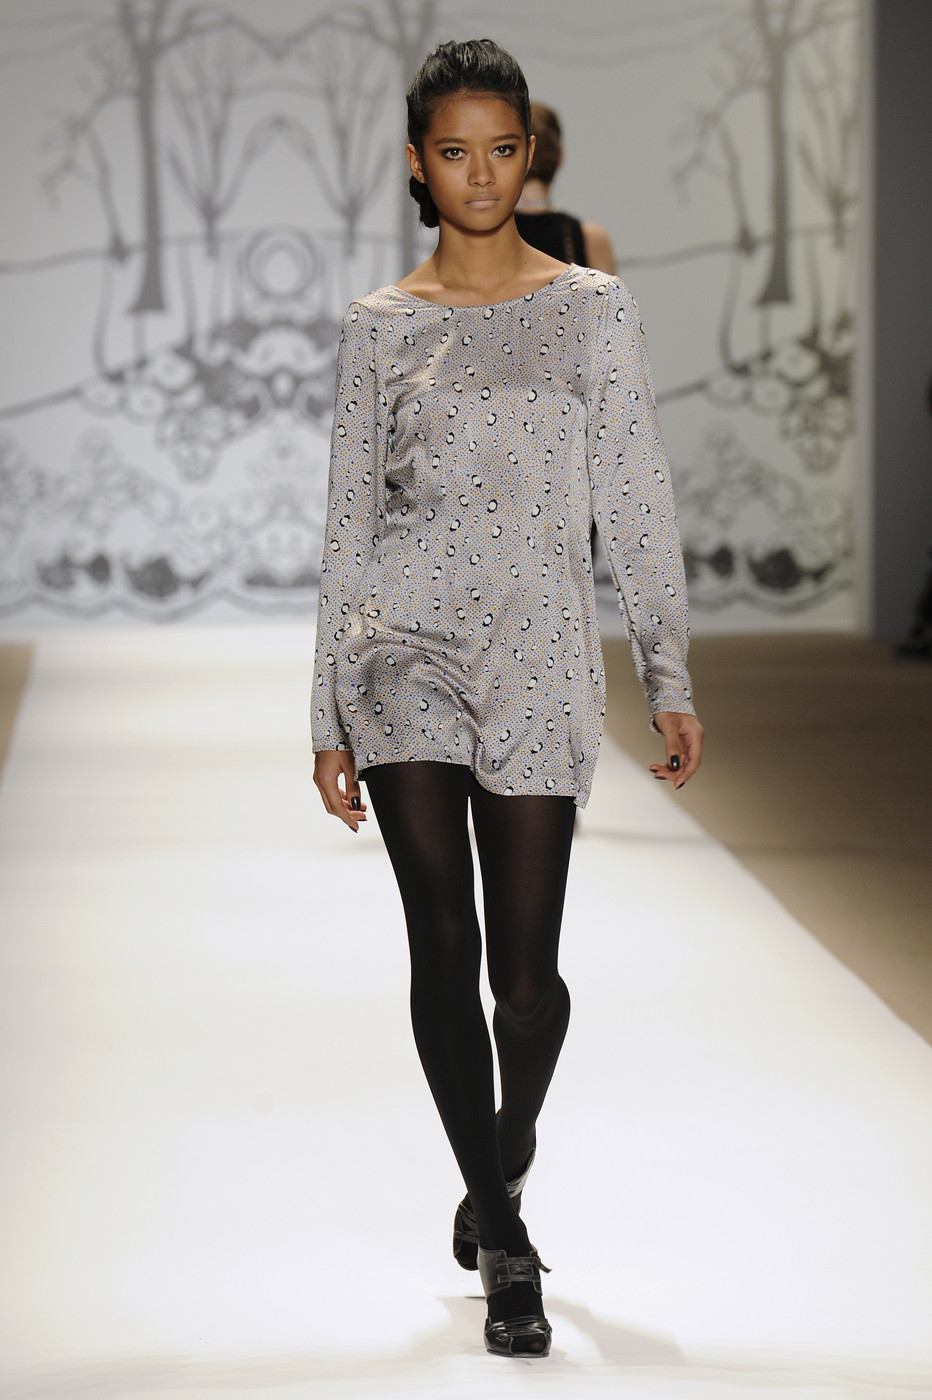 Twinkle by Wenlan - Designer Fashion Label - The Cut Twinkle by wenlan fashion